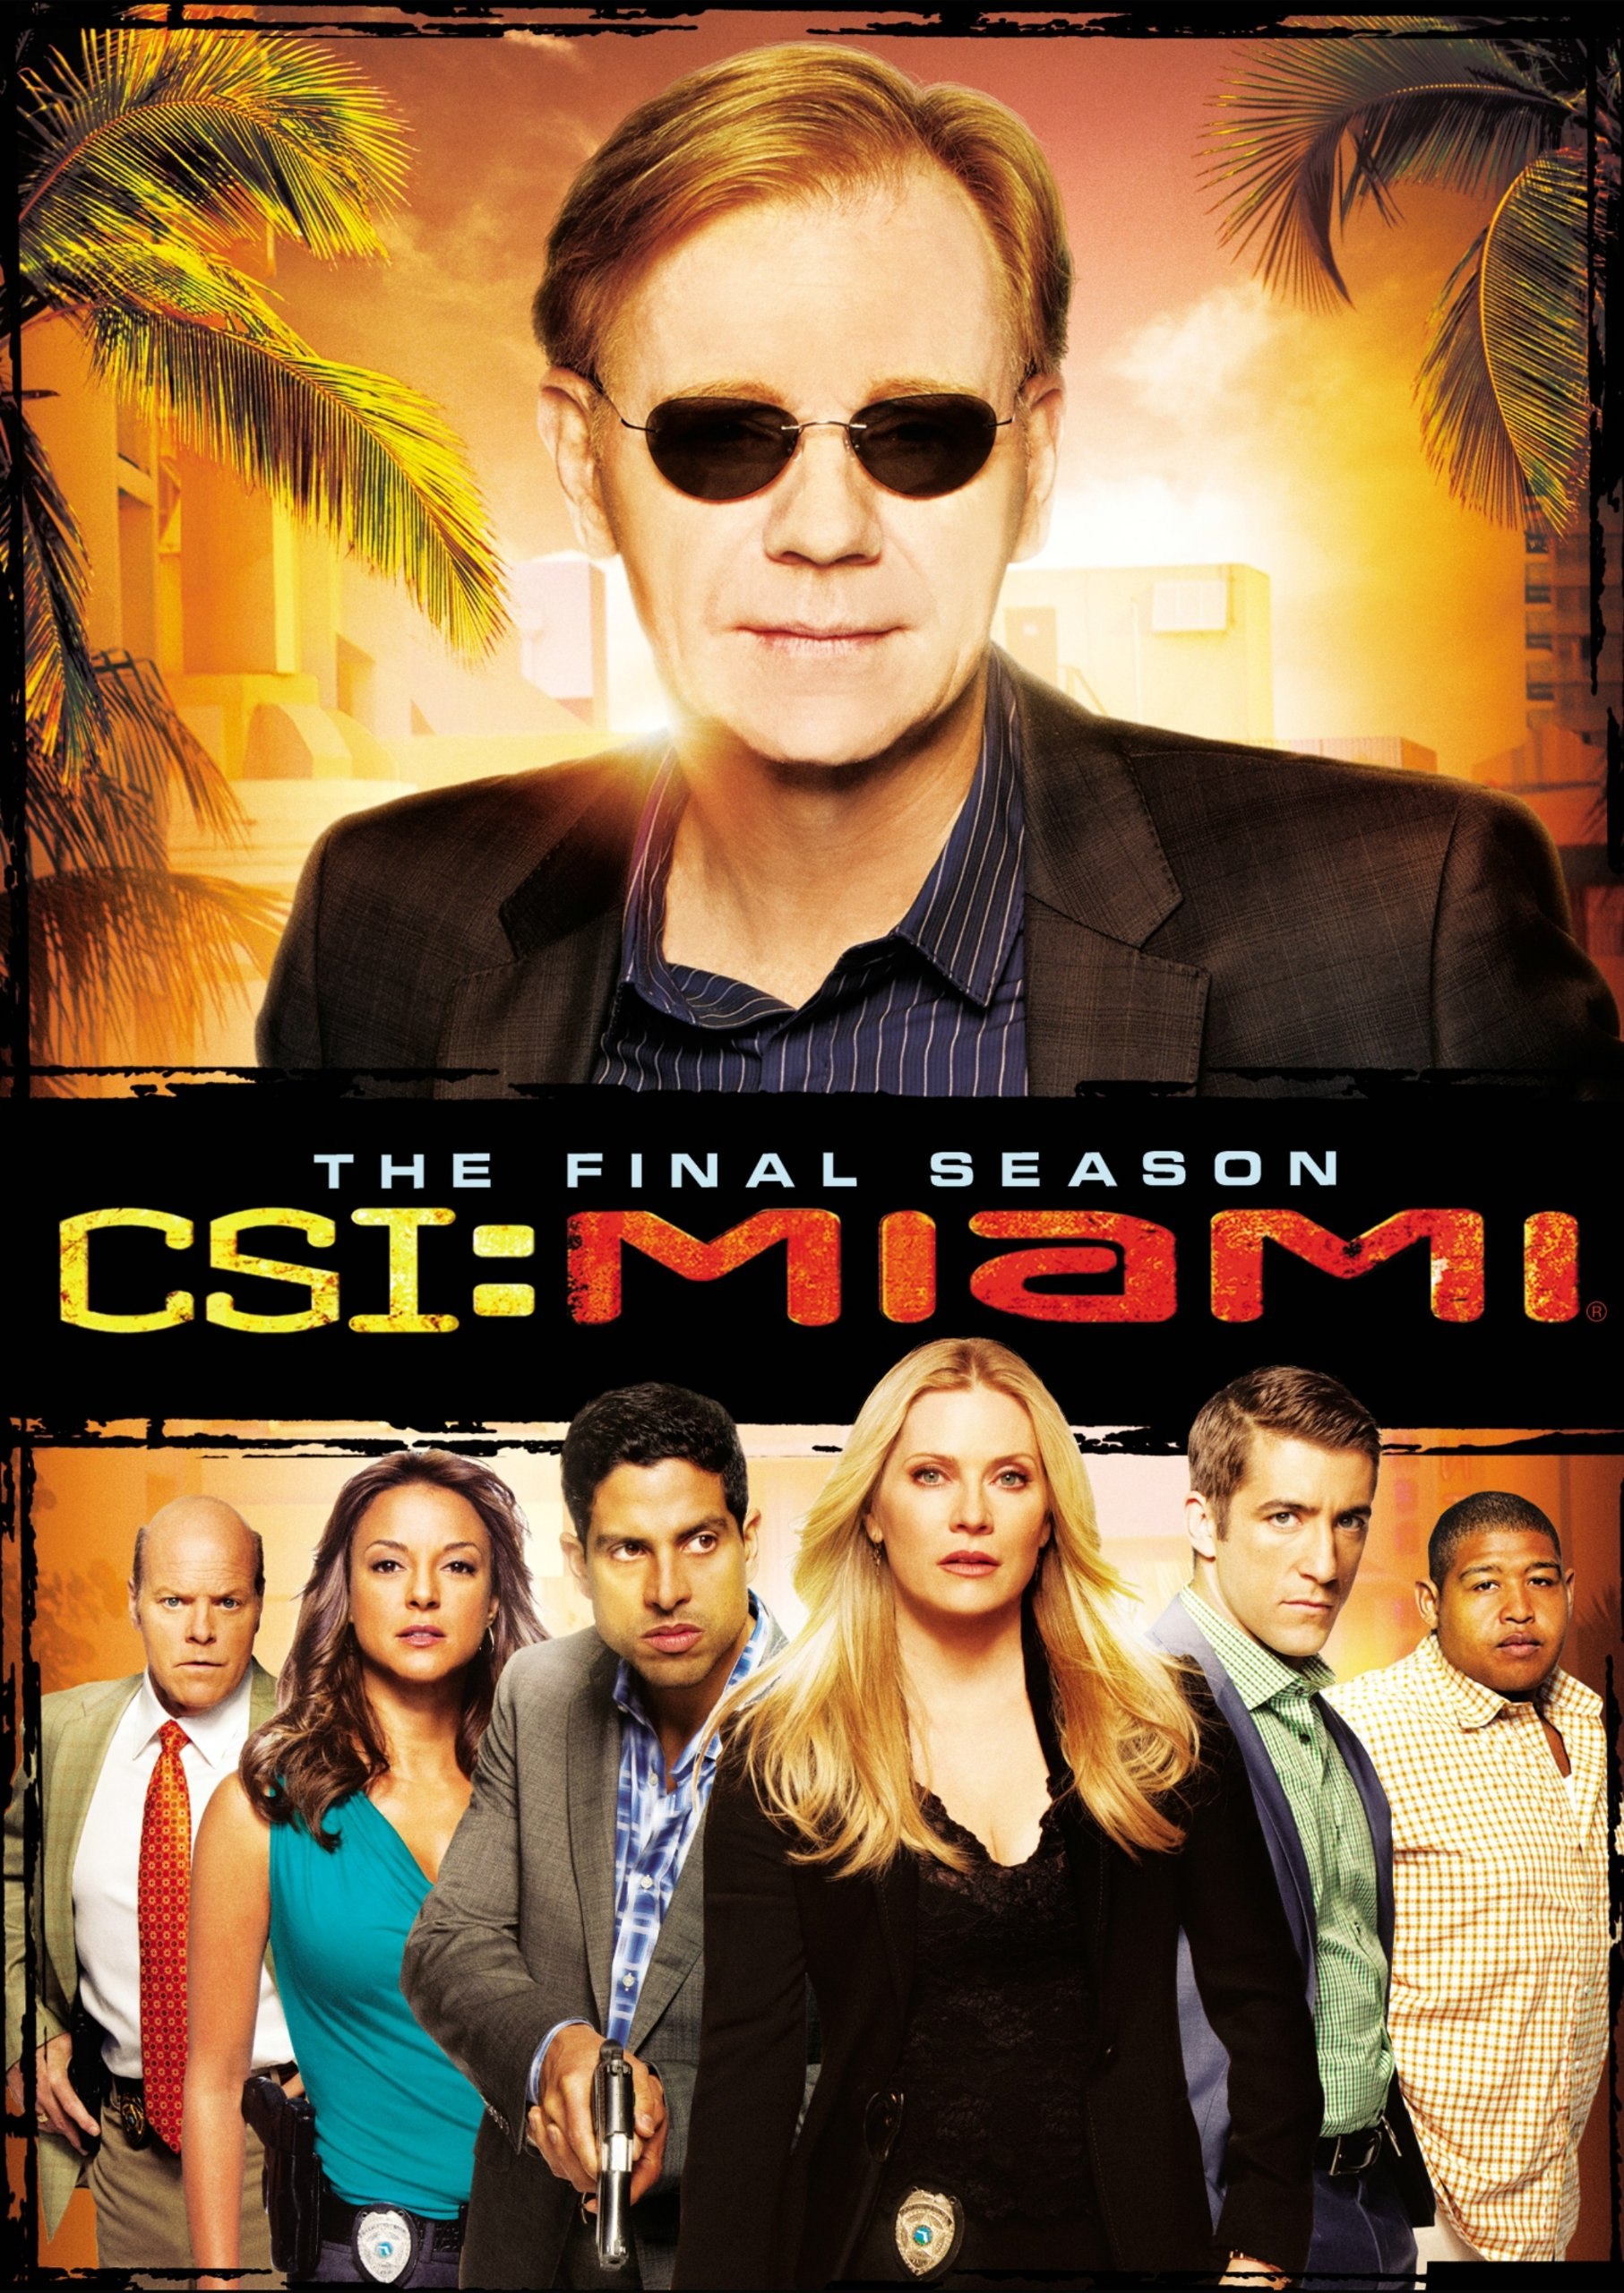 DVD : CSI: Miami: The Final Season (Boxed Set, Widescreen, Amaray Case, 5 Disc)